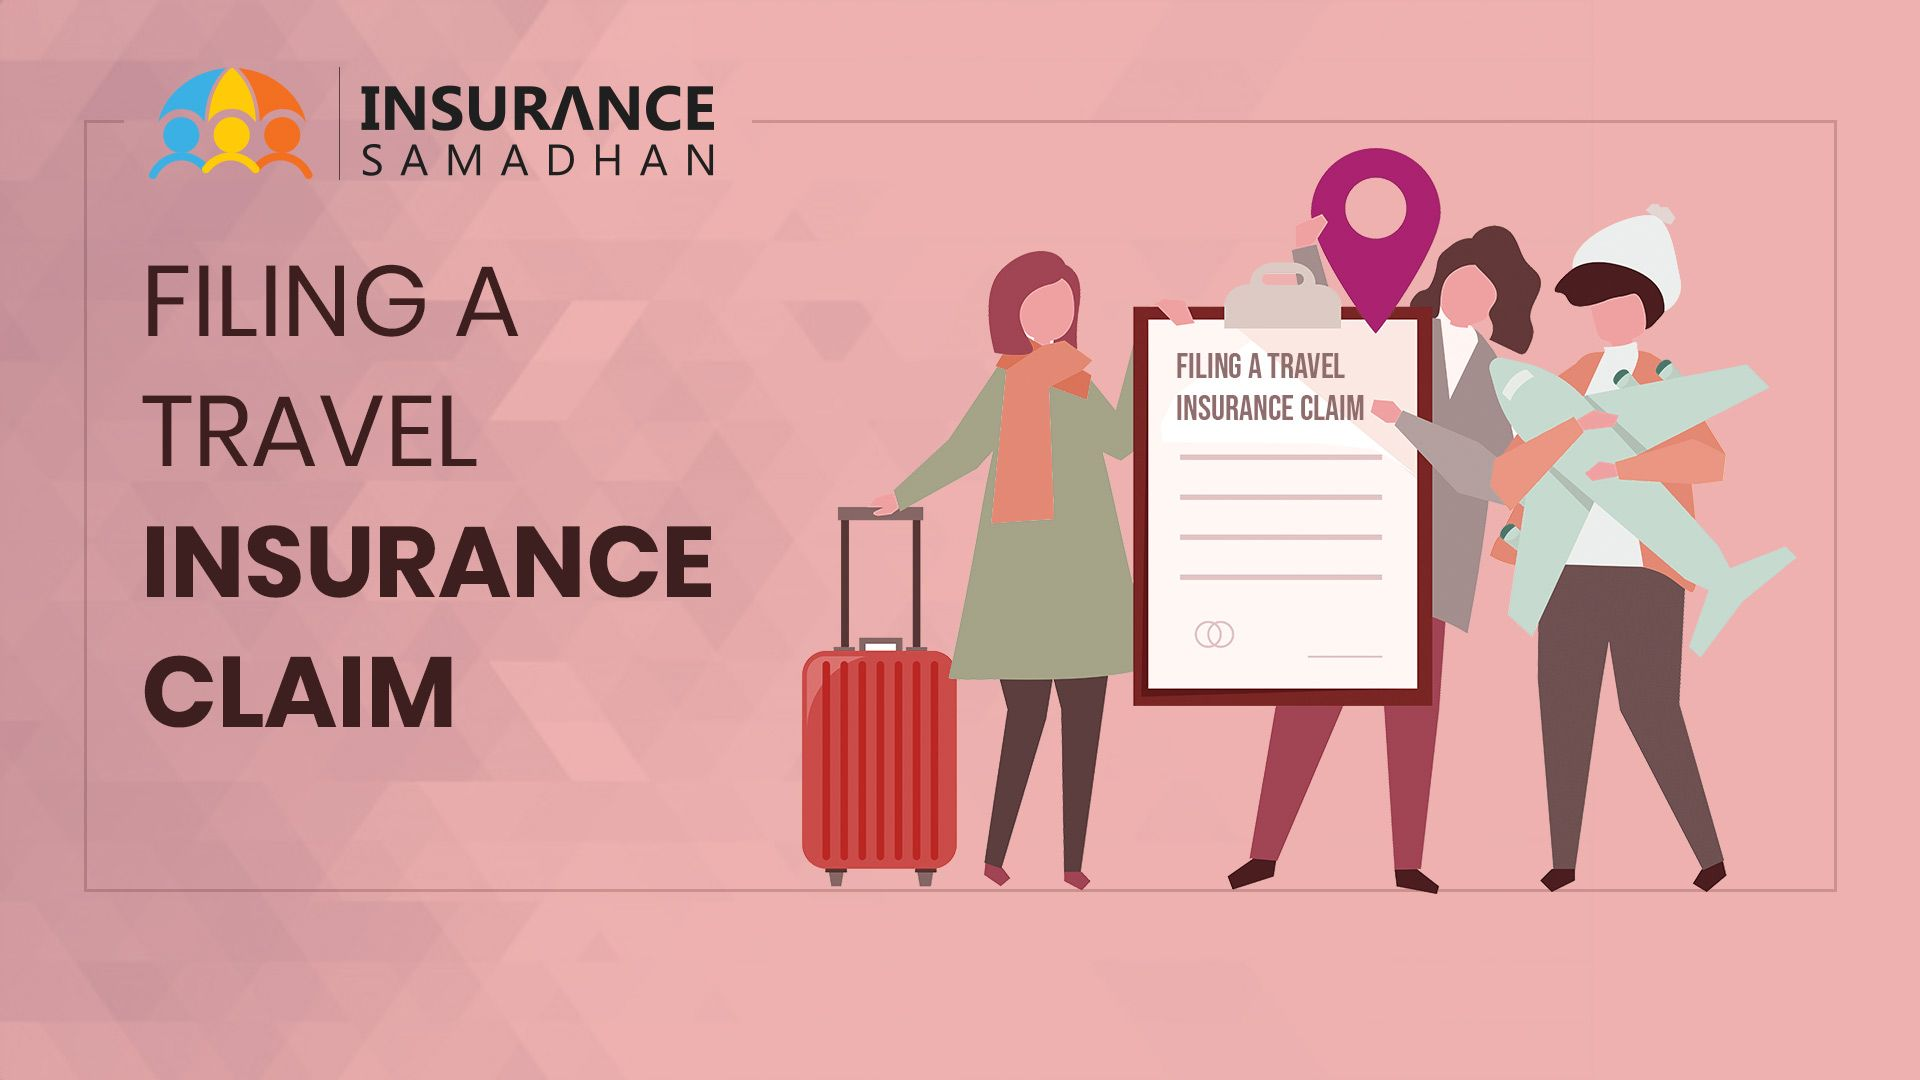 Travel Insurance: Get to Know All About Travel Insurance Claim Process in India